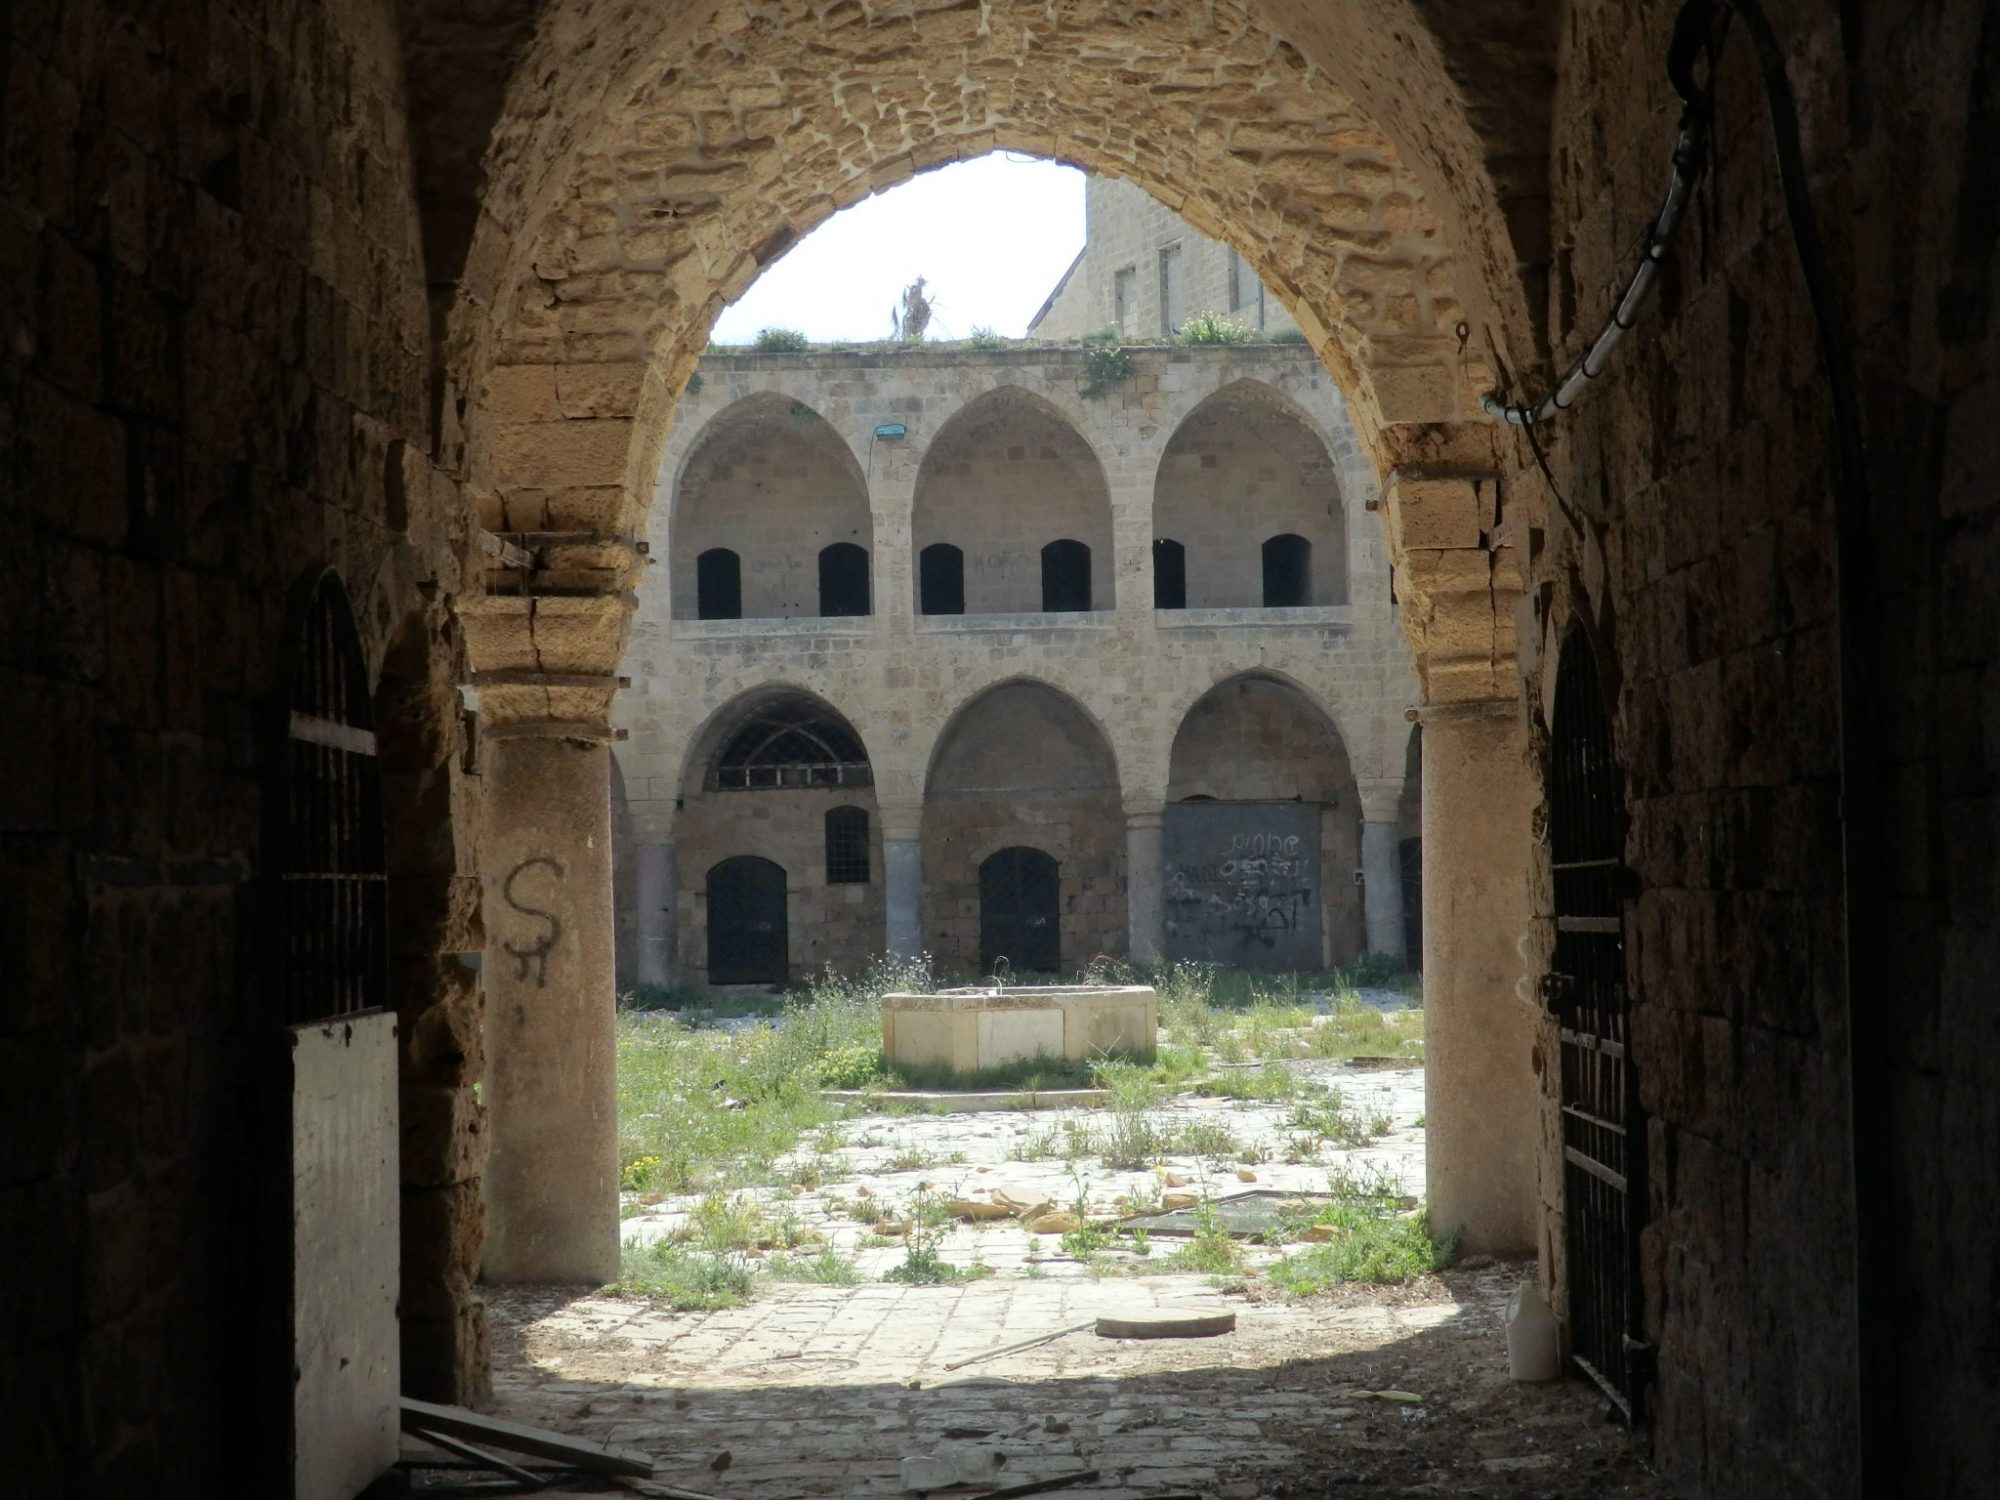 Khan al-Umdan, near the port in Akko old city, as seen through the closed-off entrance. Built in 1784, it included 40 columns made from stone brought from ancient Caesarea and Atlit. It seems to be abandoned now.